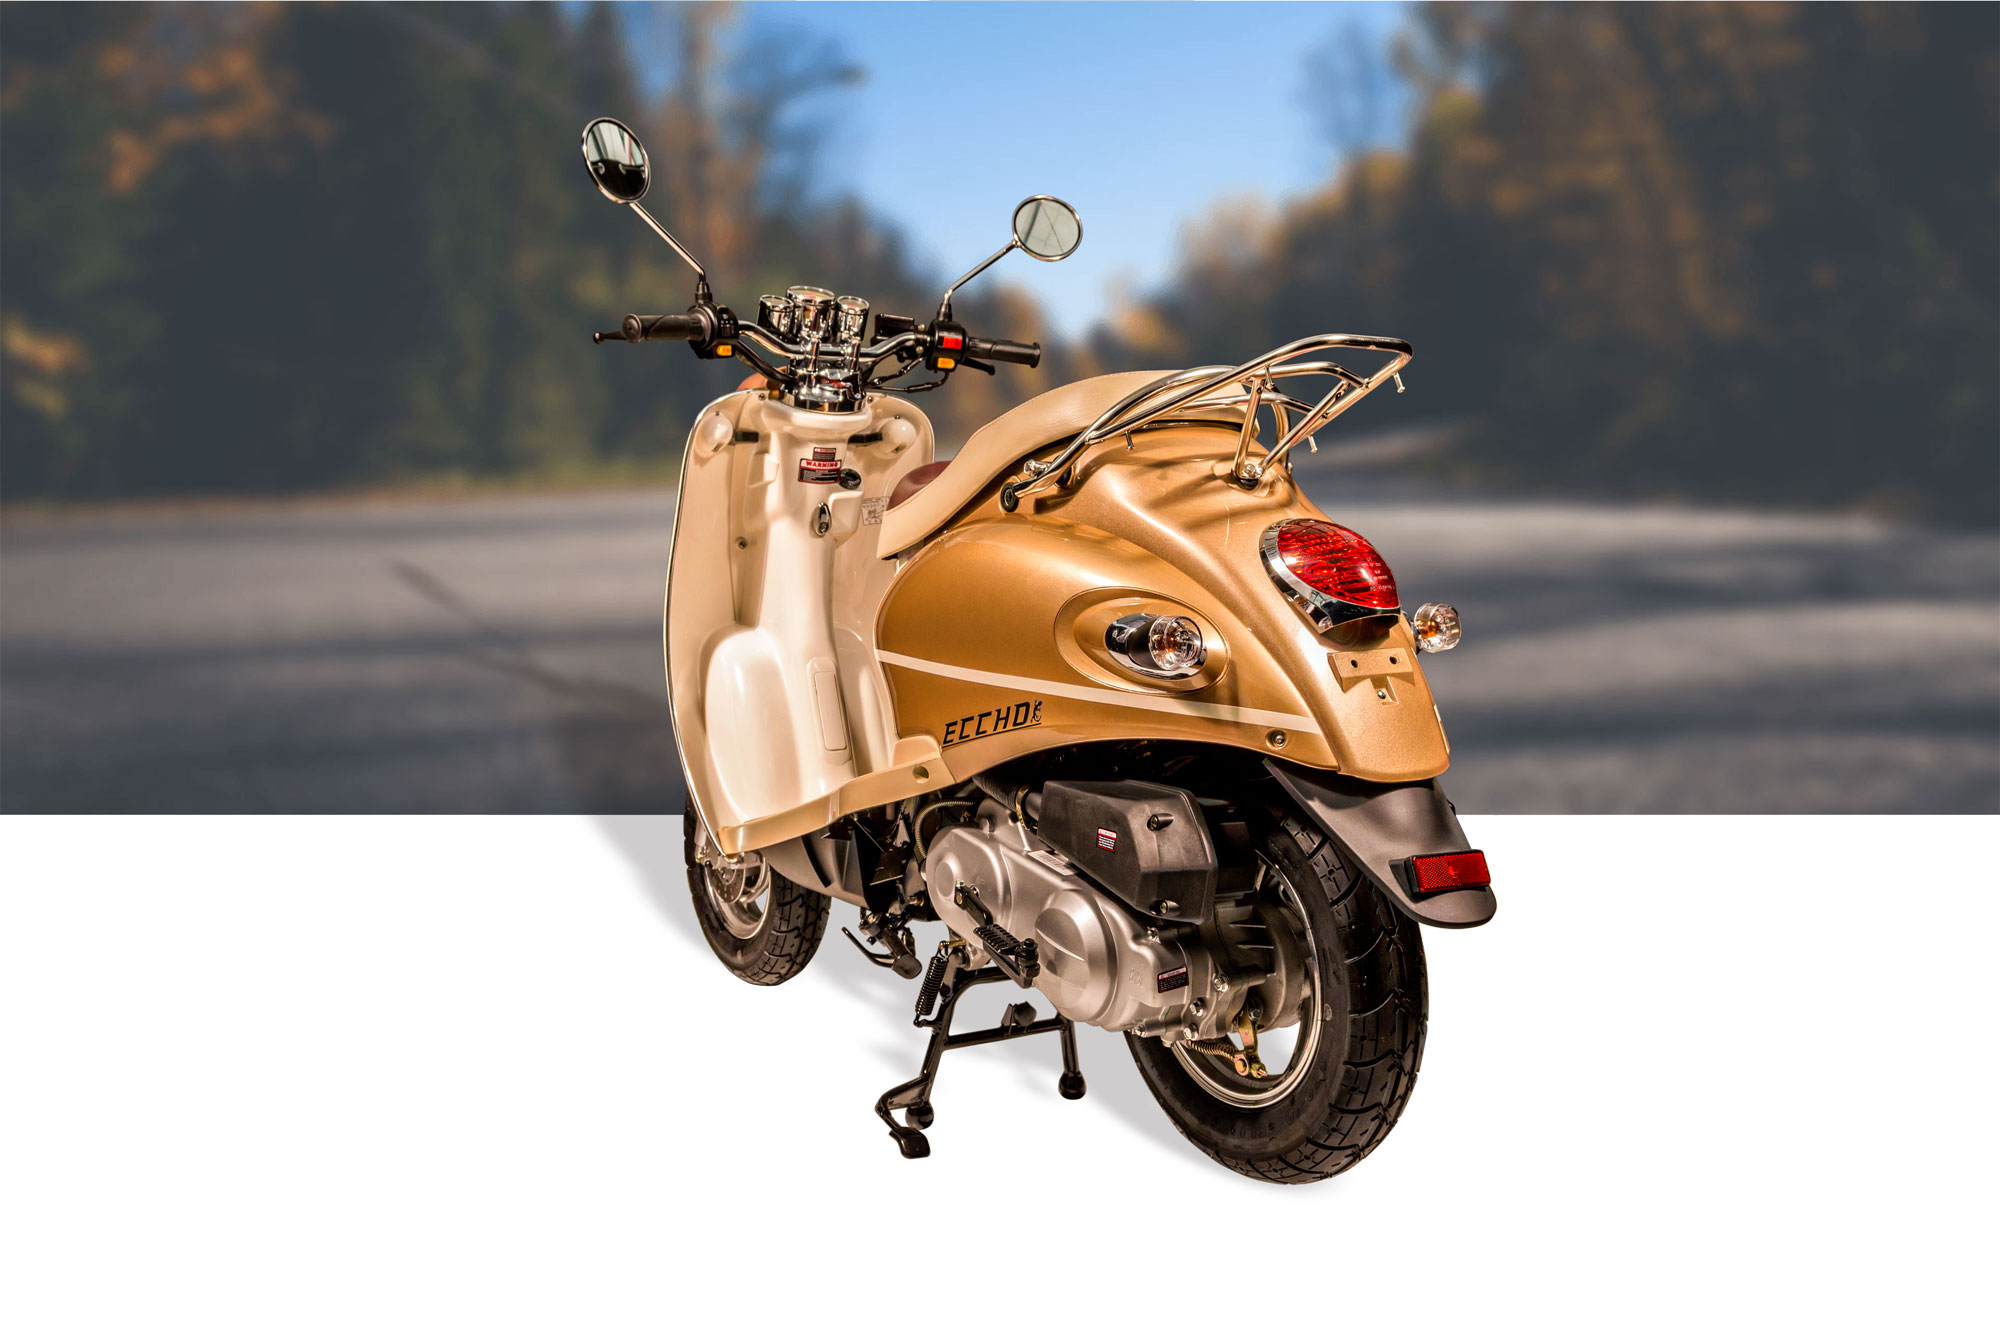 SCOOTER-50-ECCHO-RETRO-50-GOLD-II-EFI-09